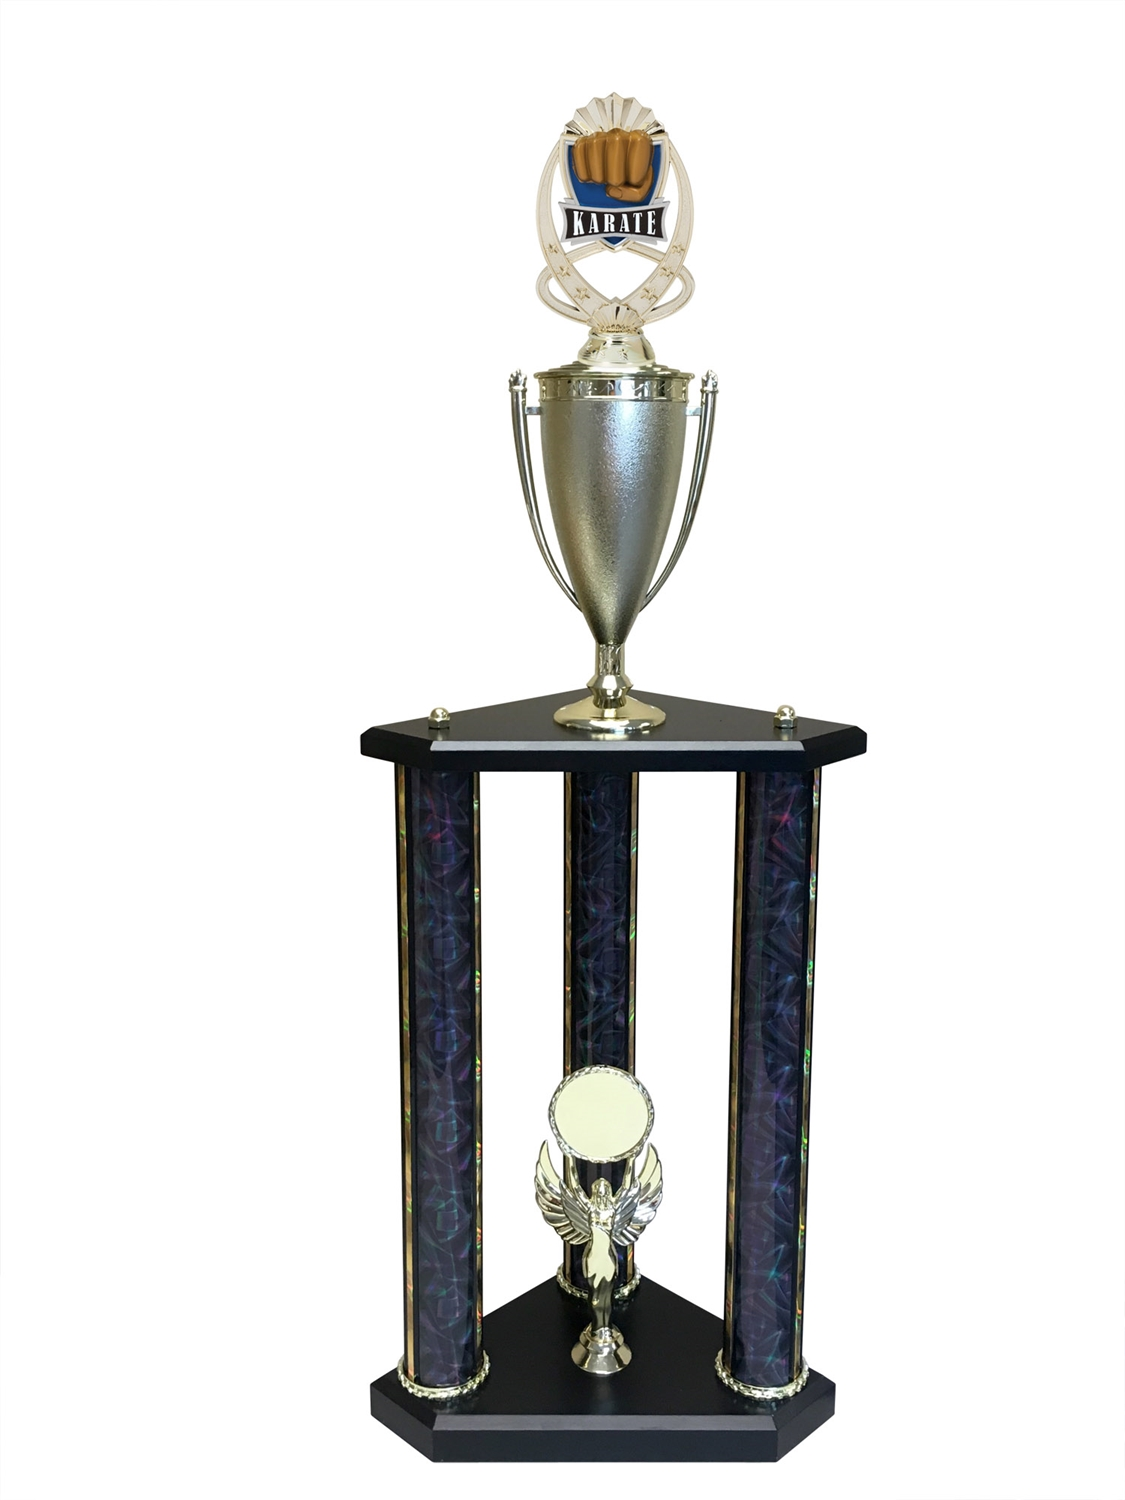 3 Post Karate Trophy in 11 colors & 3 sizes